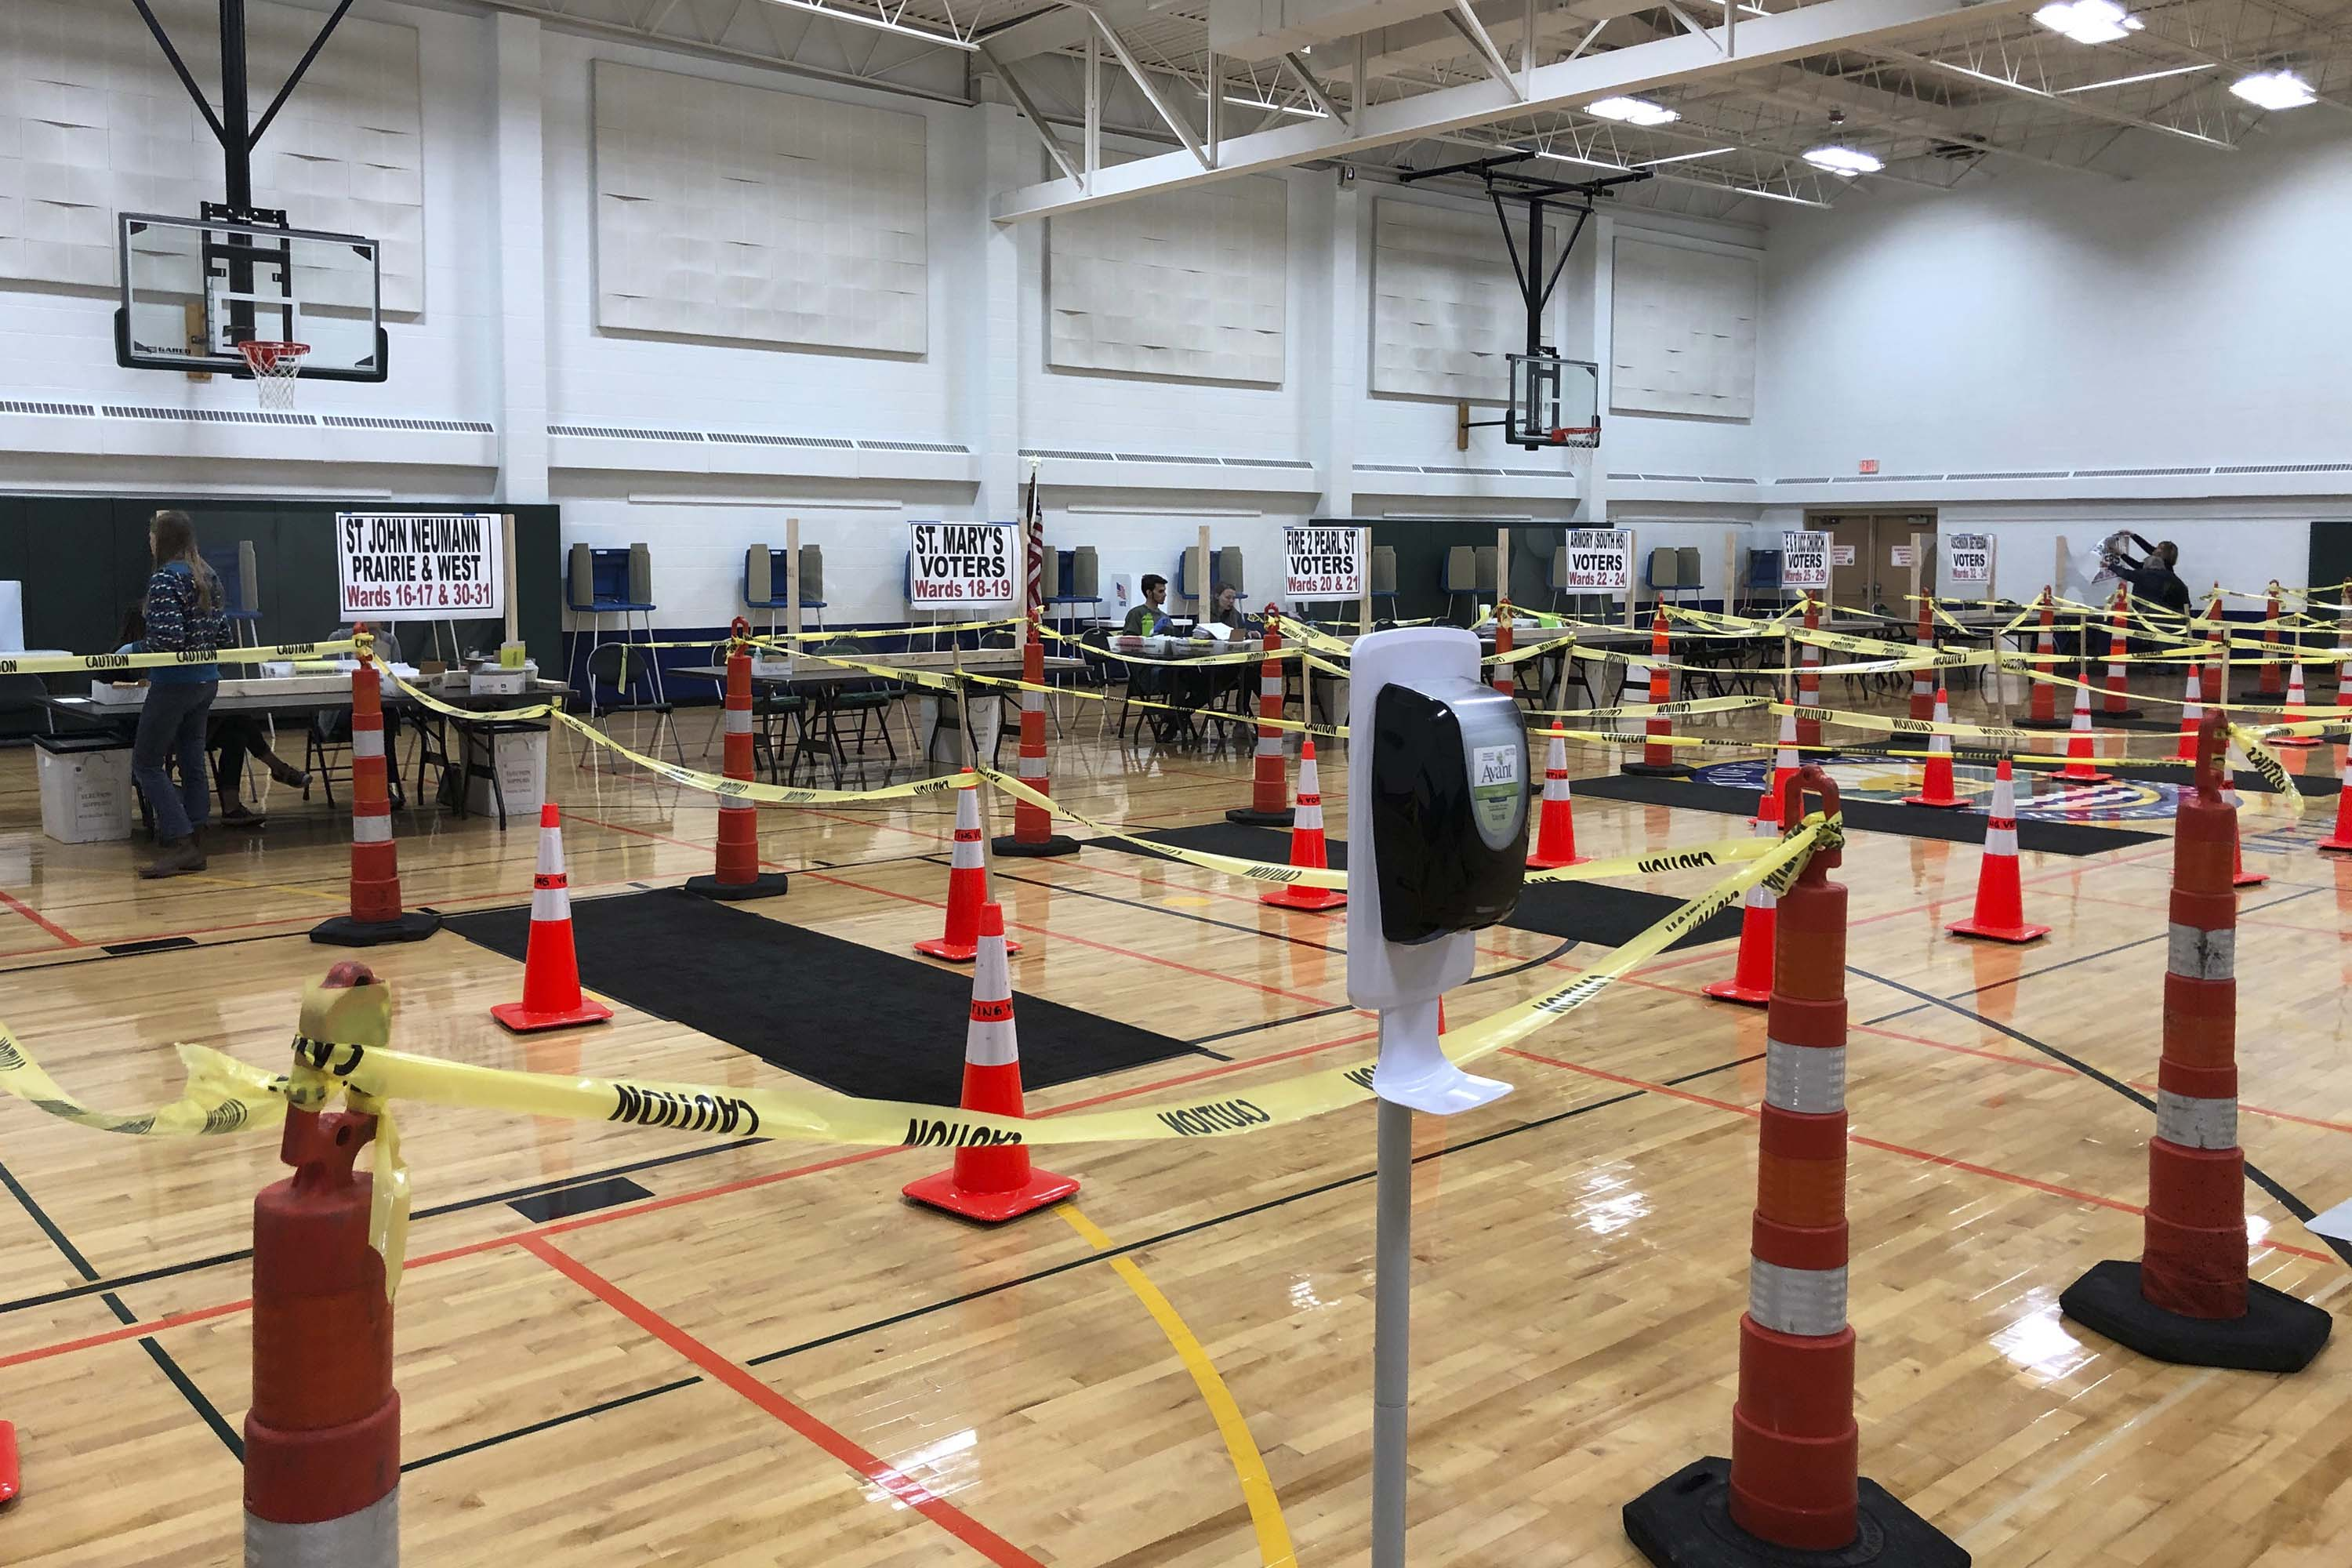 A polling station set-up is pictured in Waukesha, Wisconsin, on April 6.